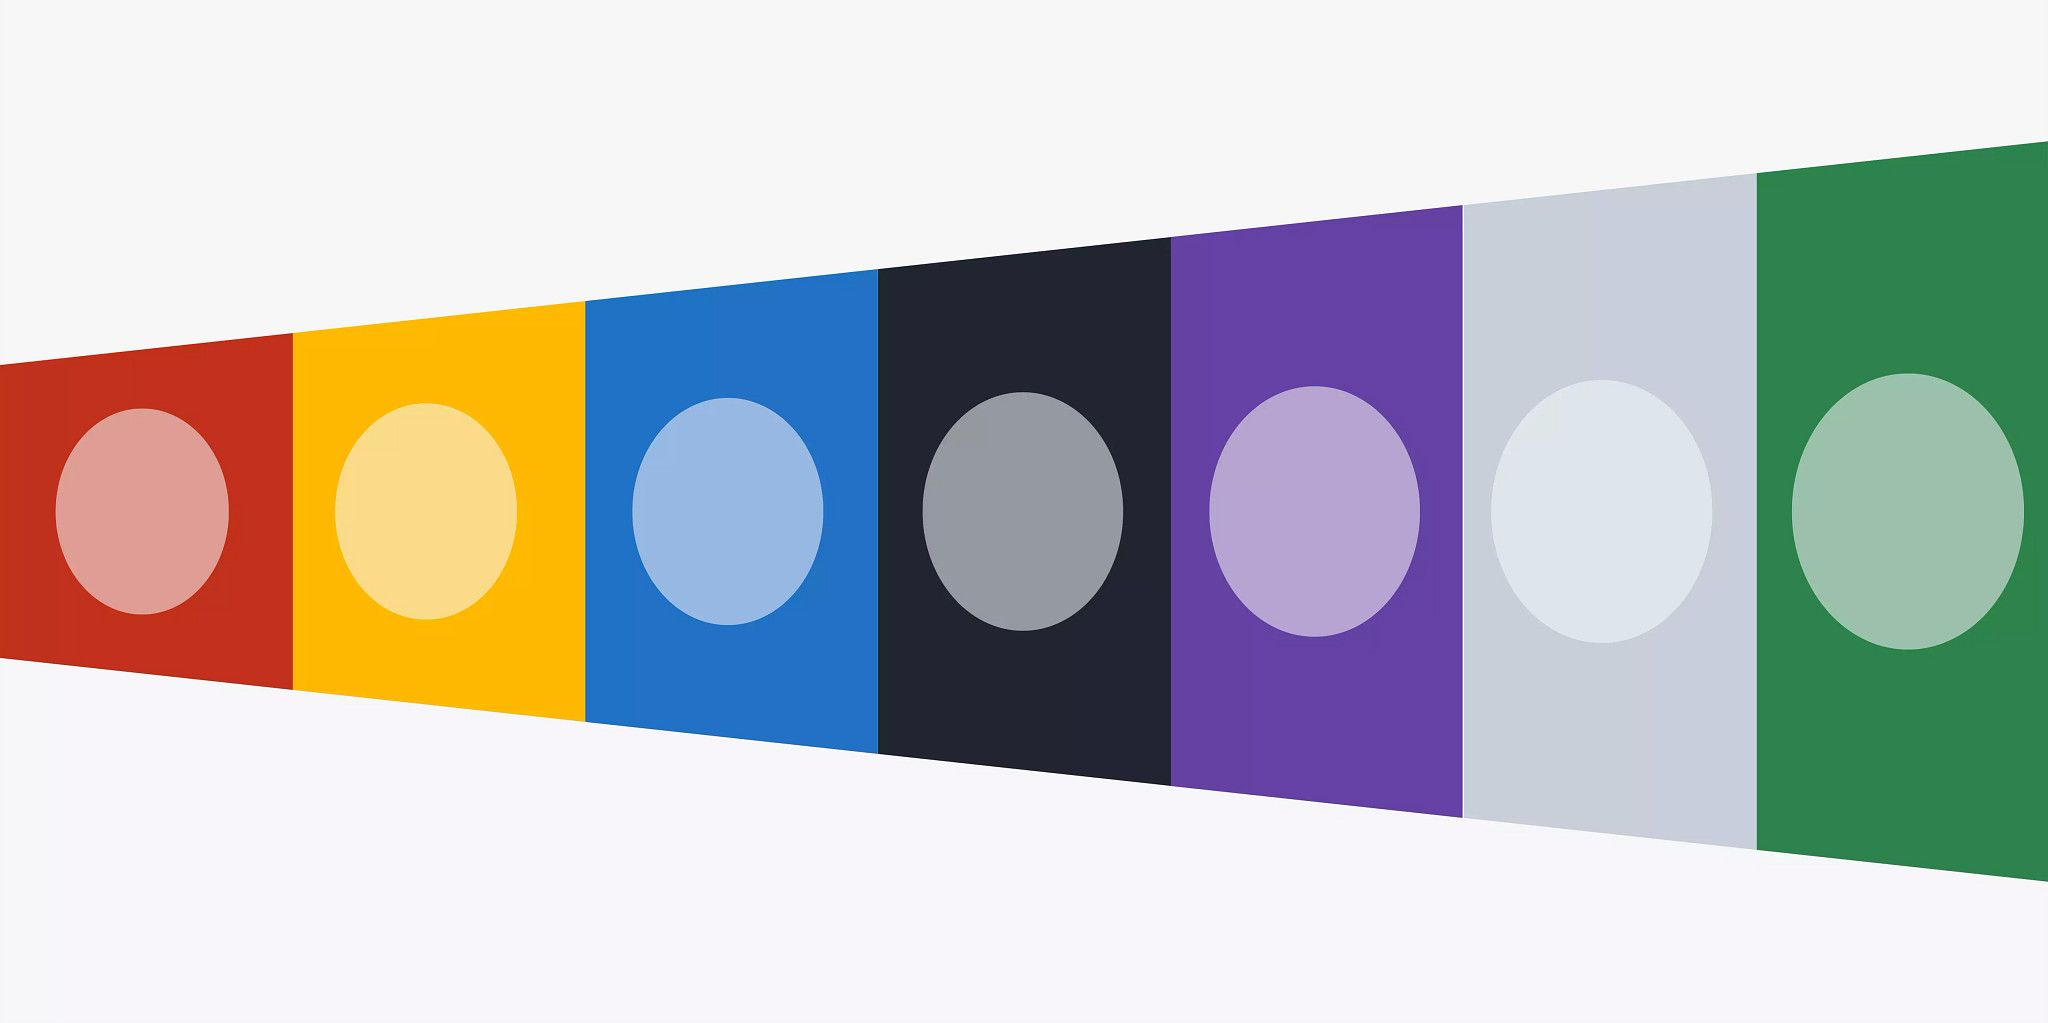 Seven trapezoids in varying colors growing larger vertically as you look from left to right. All have a circle in the middle of them of the same color but at a higher transparency.